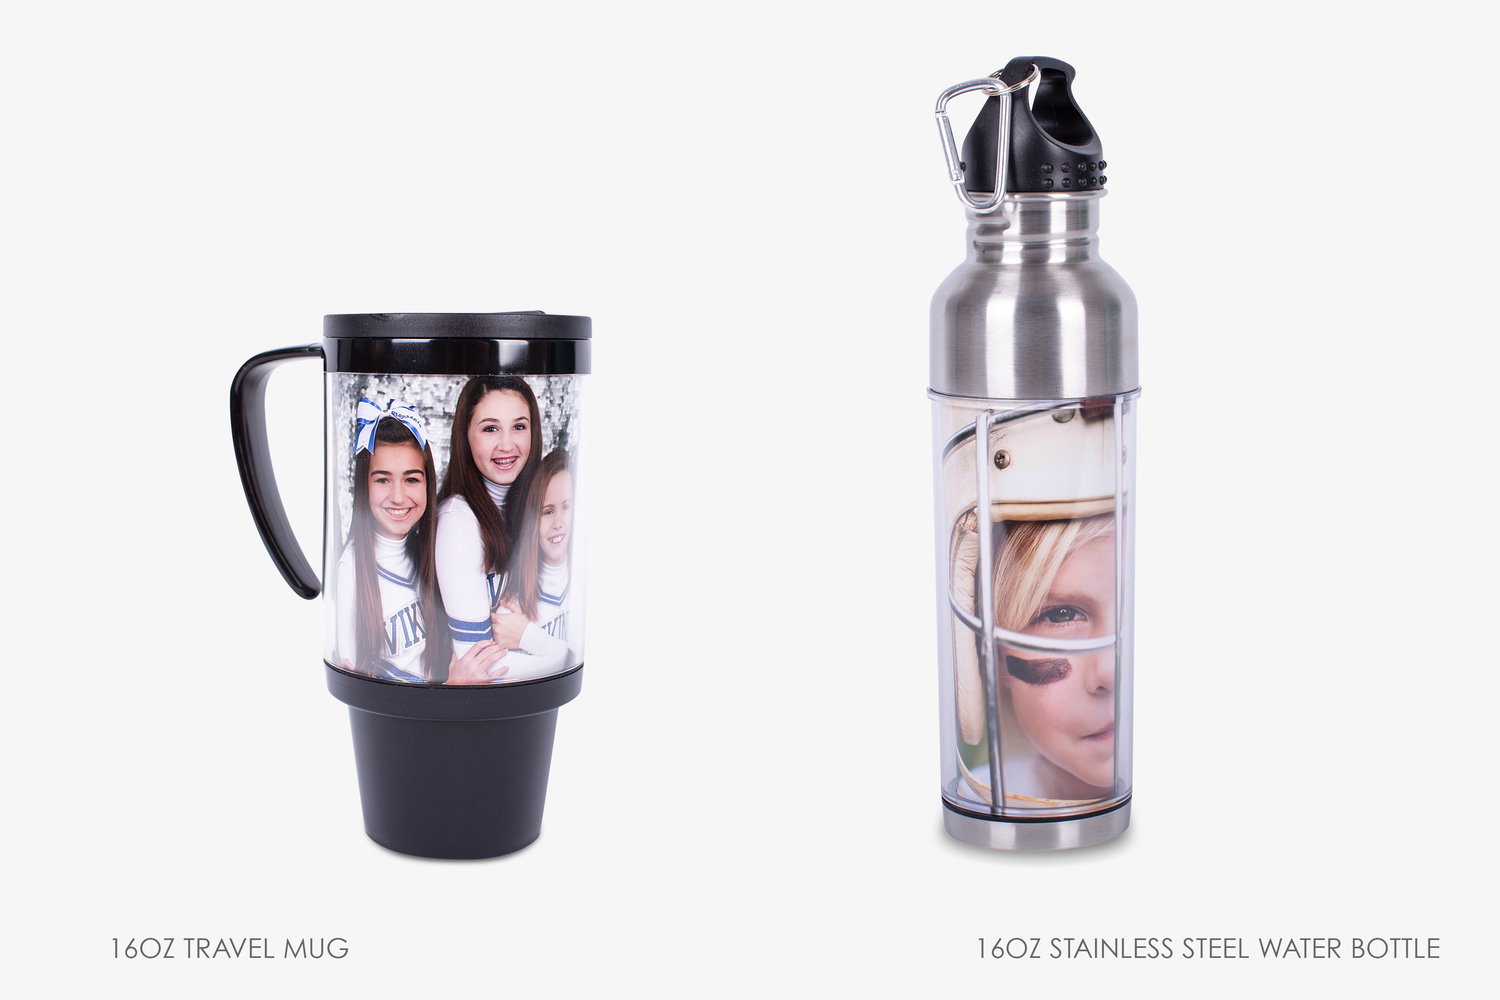 WLV_0891-Sports_Travel_Mug_Water_Bottle.jpg